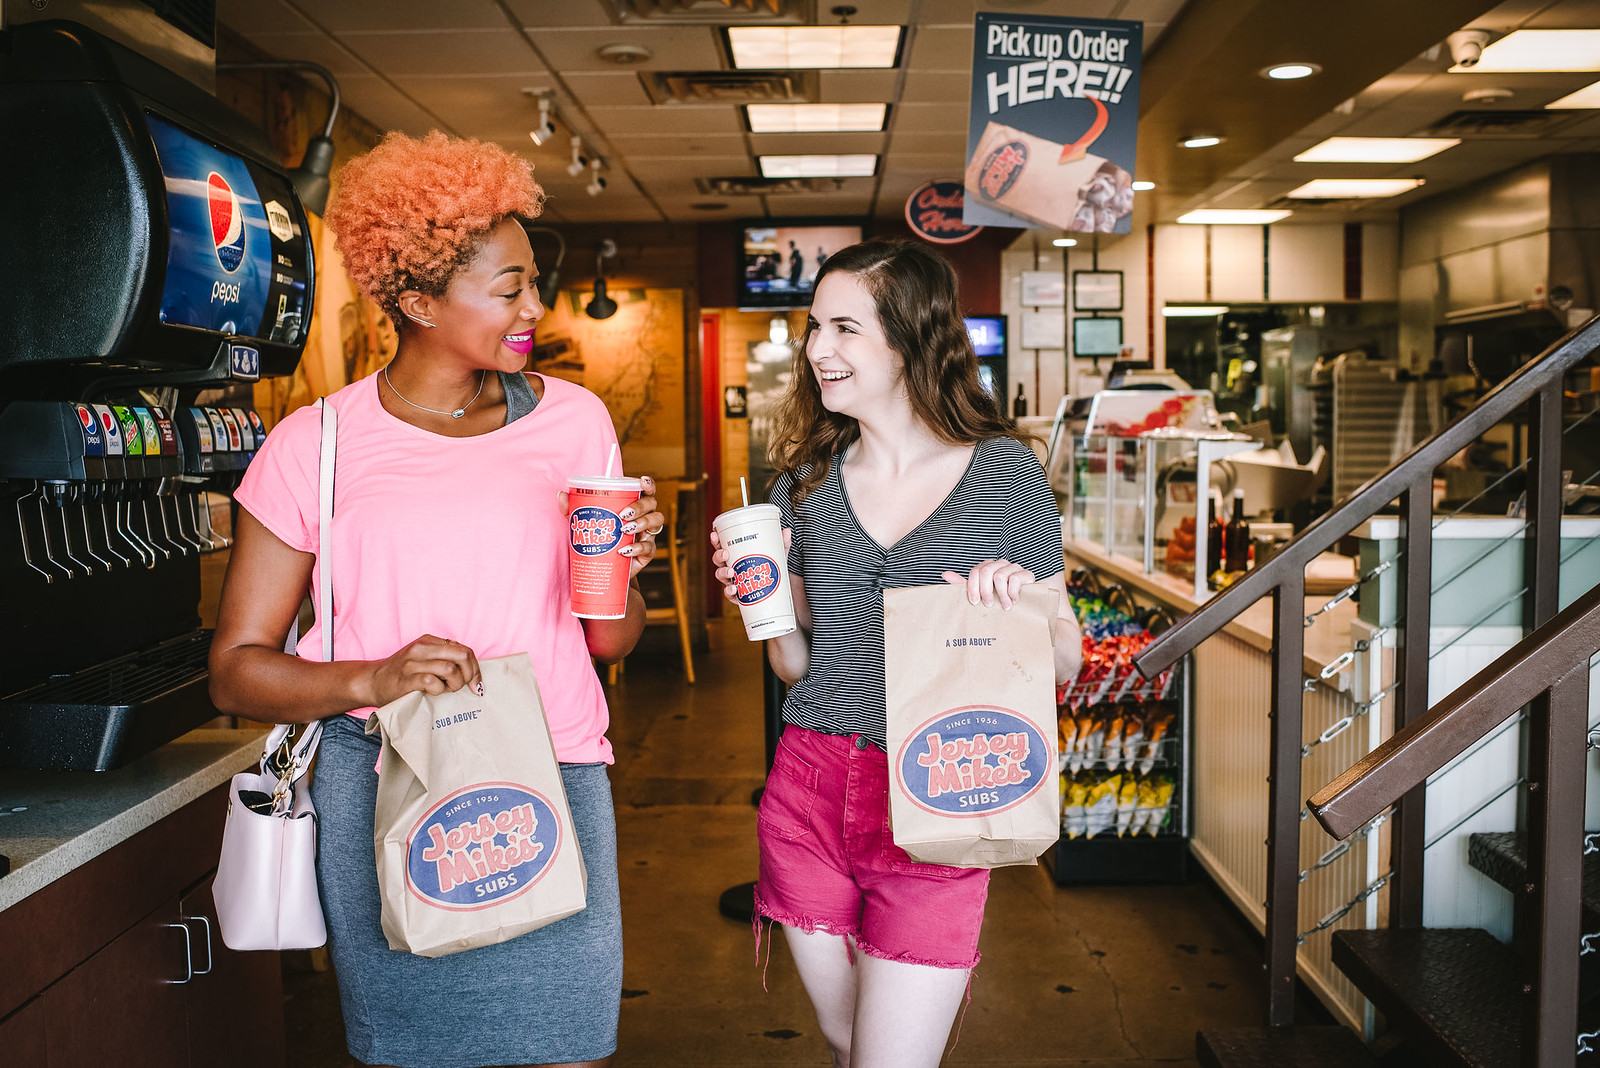 order from jersey mike's